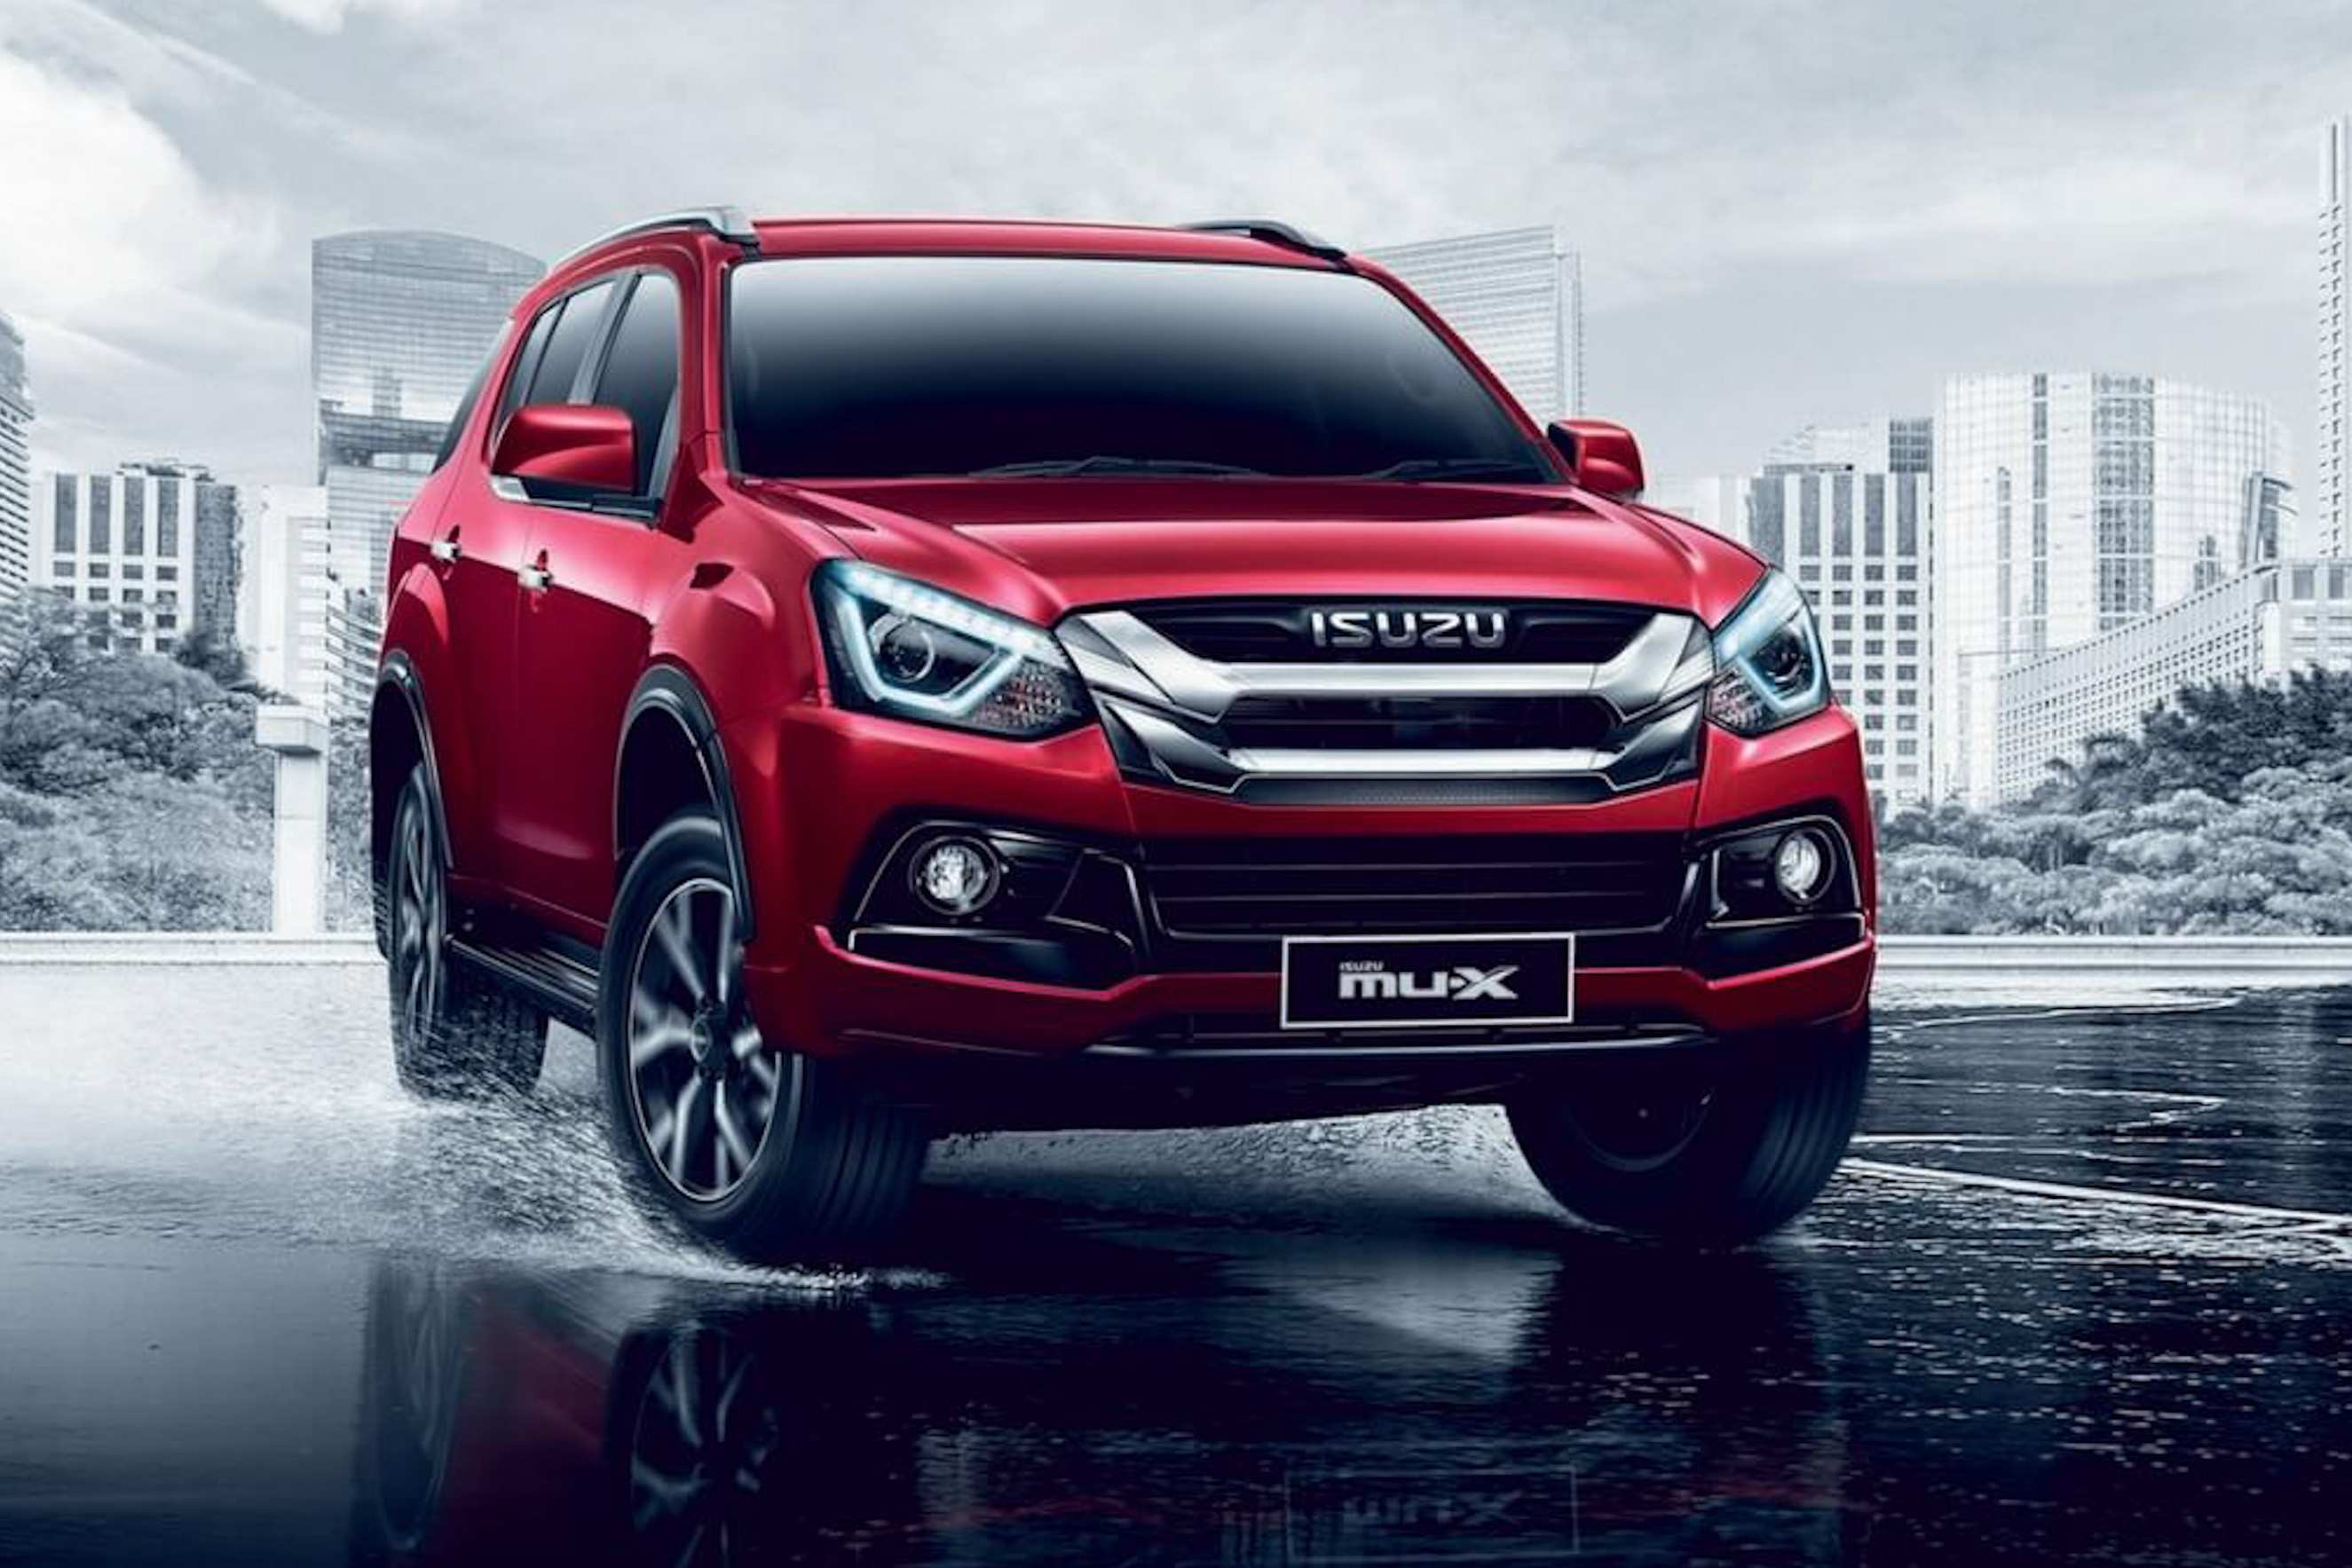 34 All New 2020 Isuzu Mu X Images by 2020 Isuzu Mu X